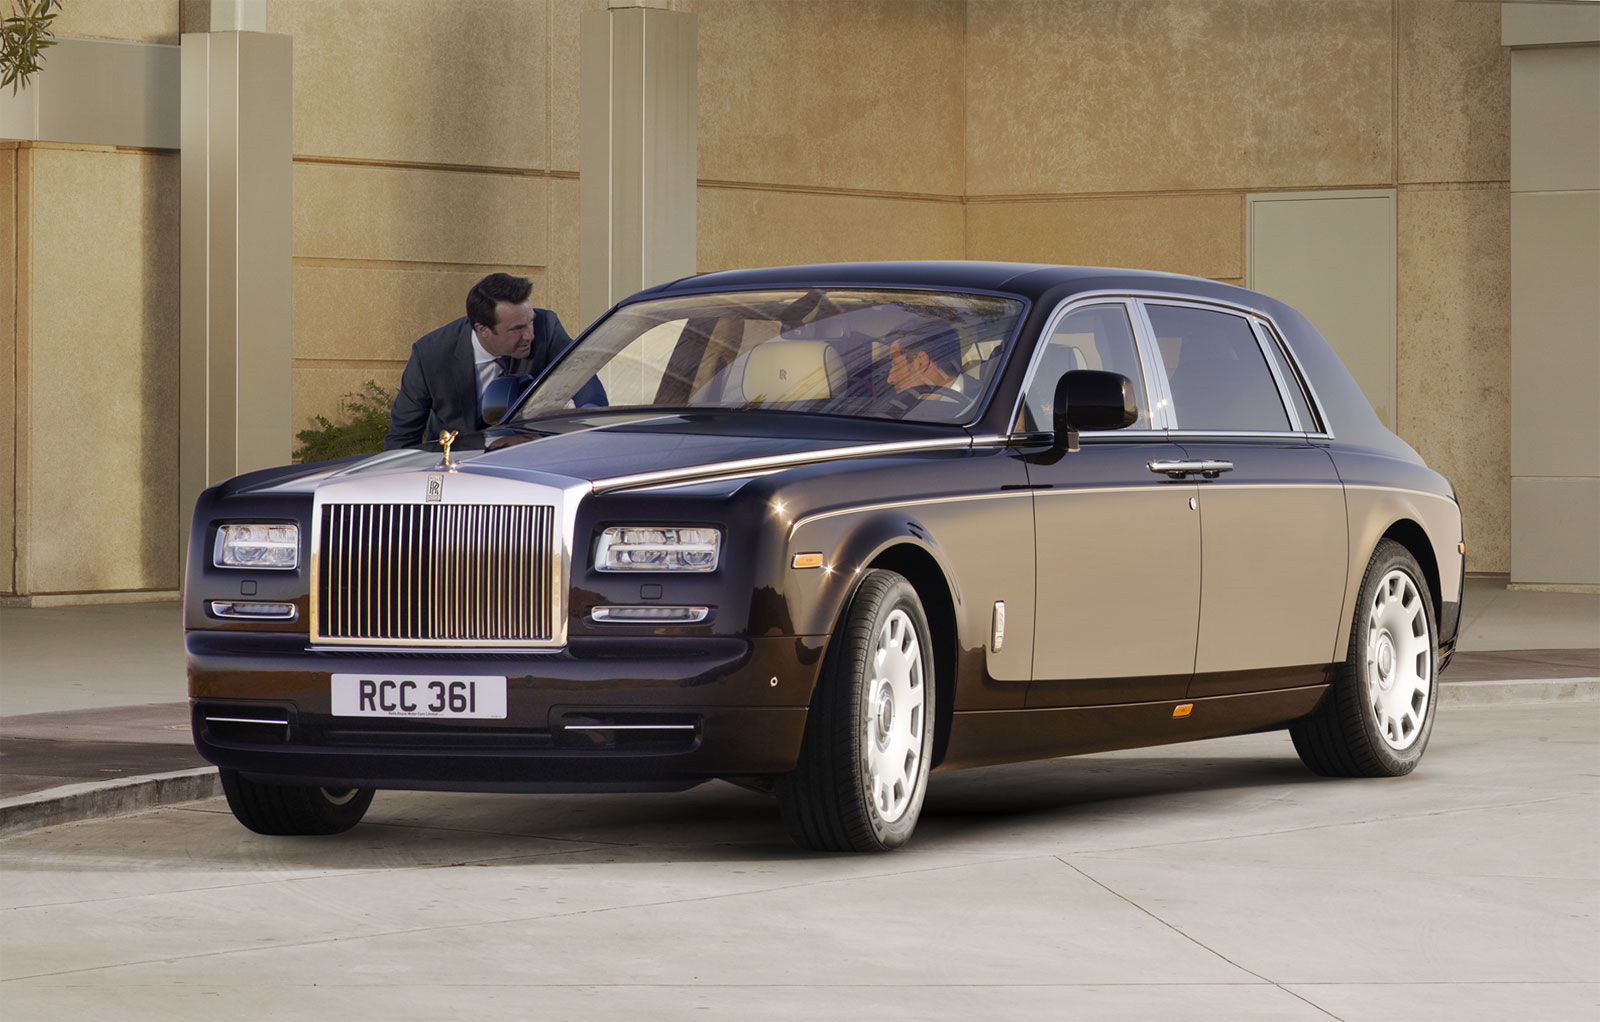 rolls royce phantom extetnded wheelbase 2013 car barn sport. Black Bedroom Furniture Sets. Home Design Ideas